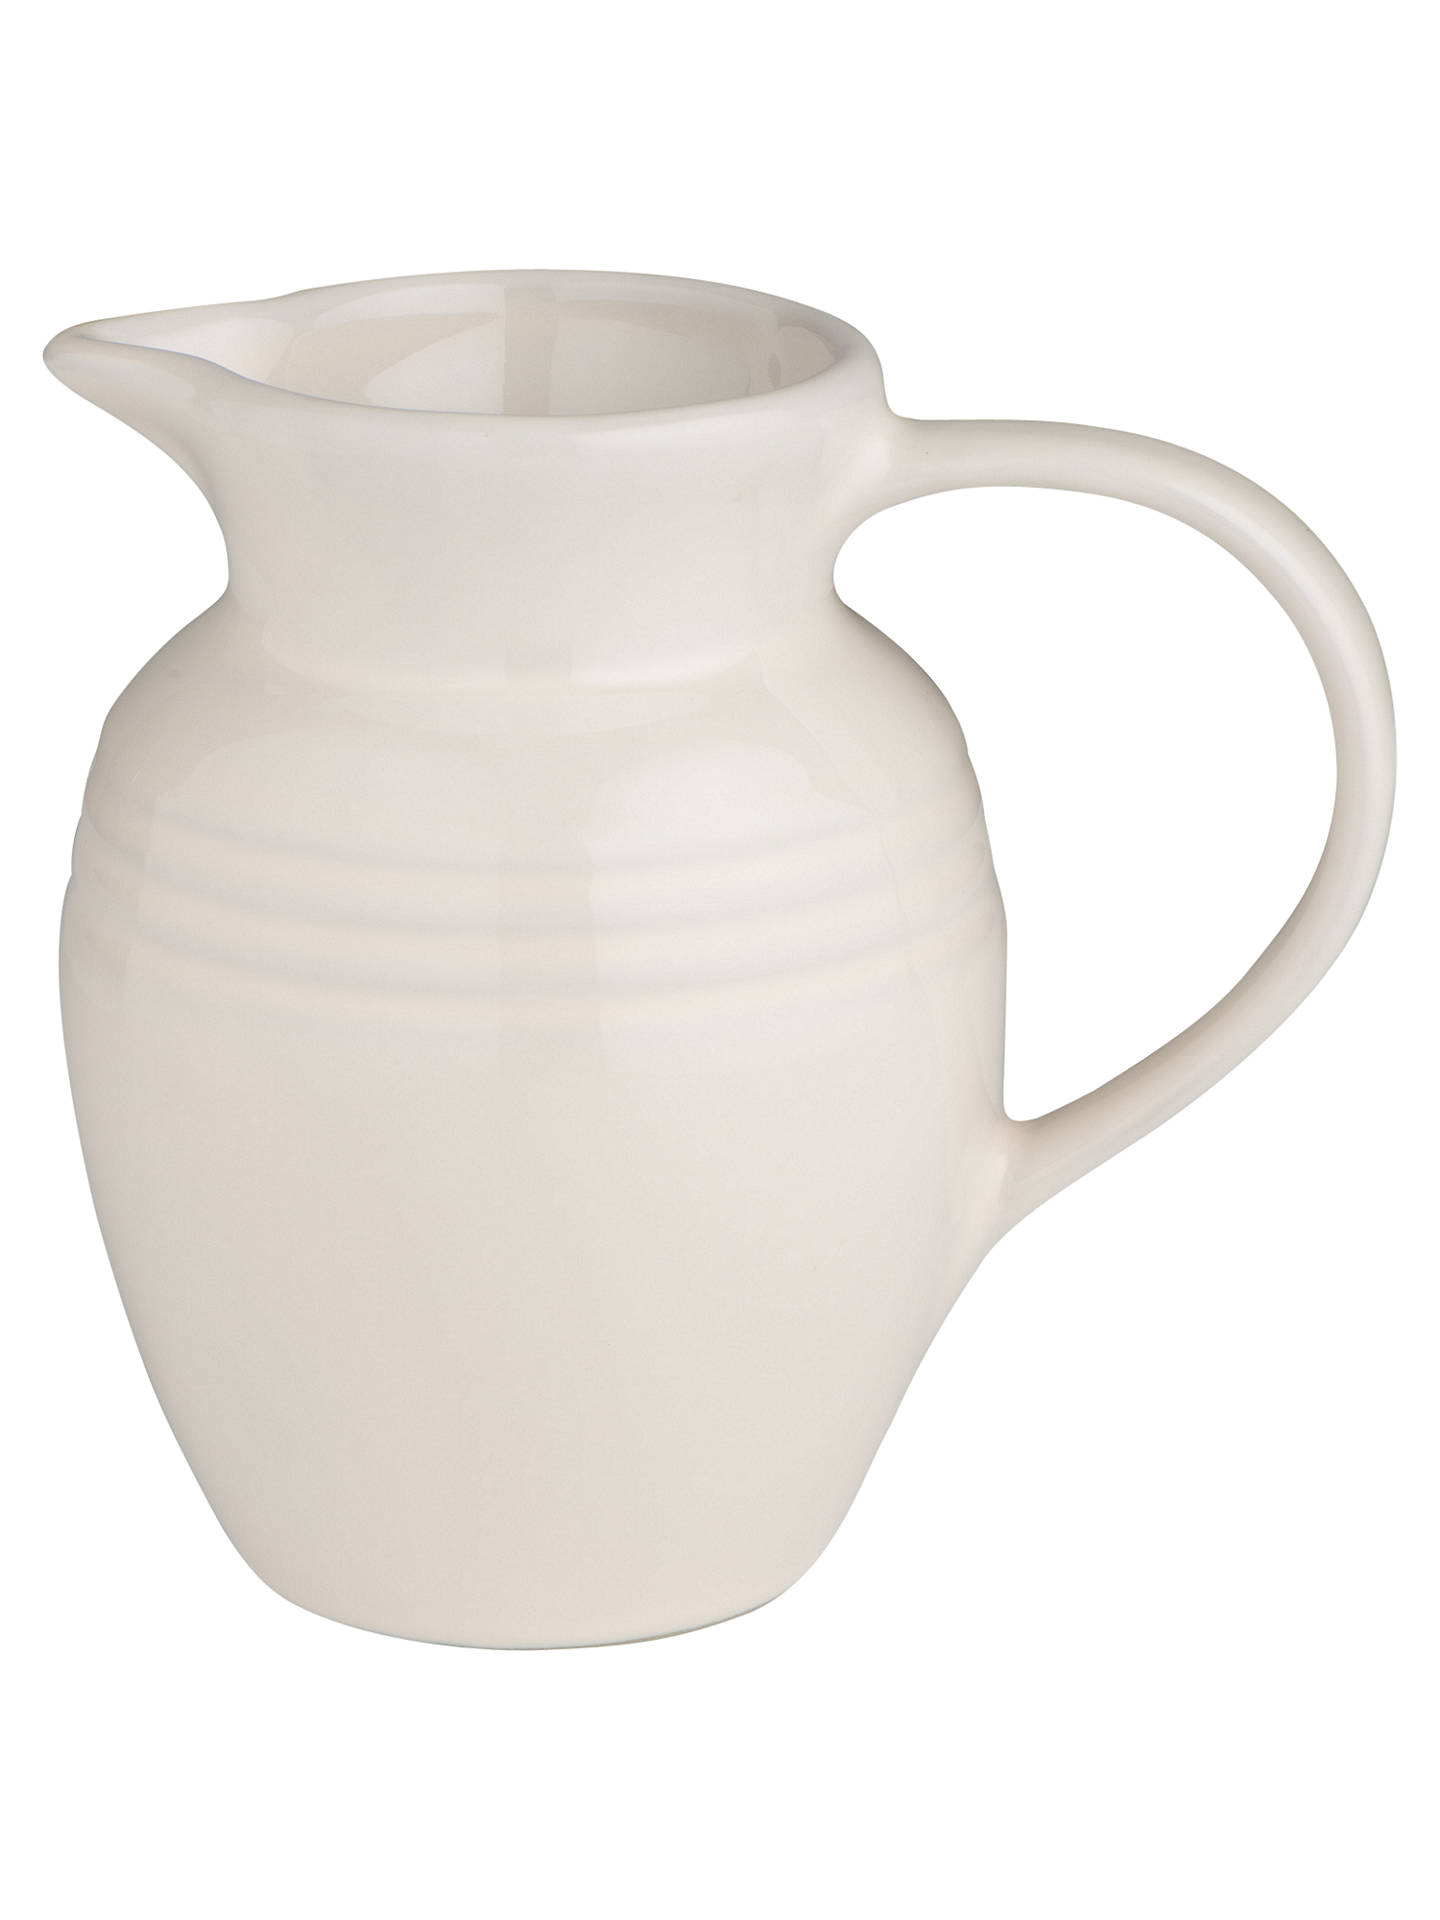 Buy Le Creuset Stoneware Breakfast Jug, 600ml, Almond Online at johnlewis.com